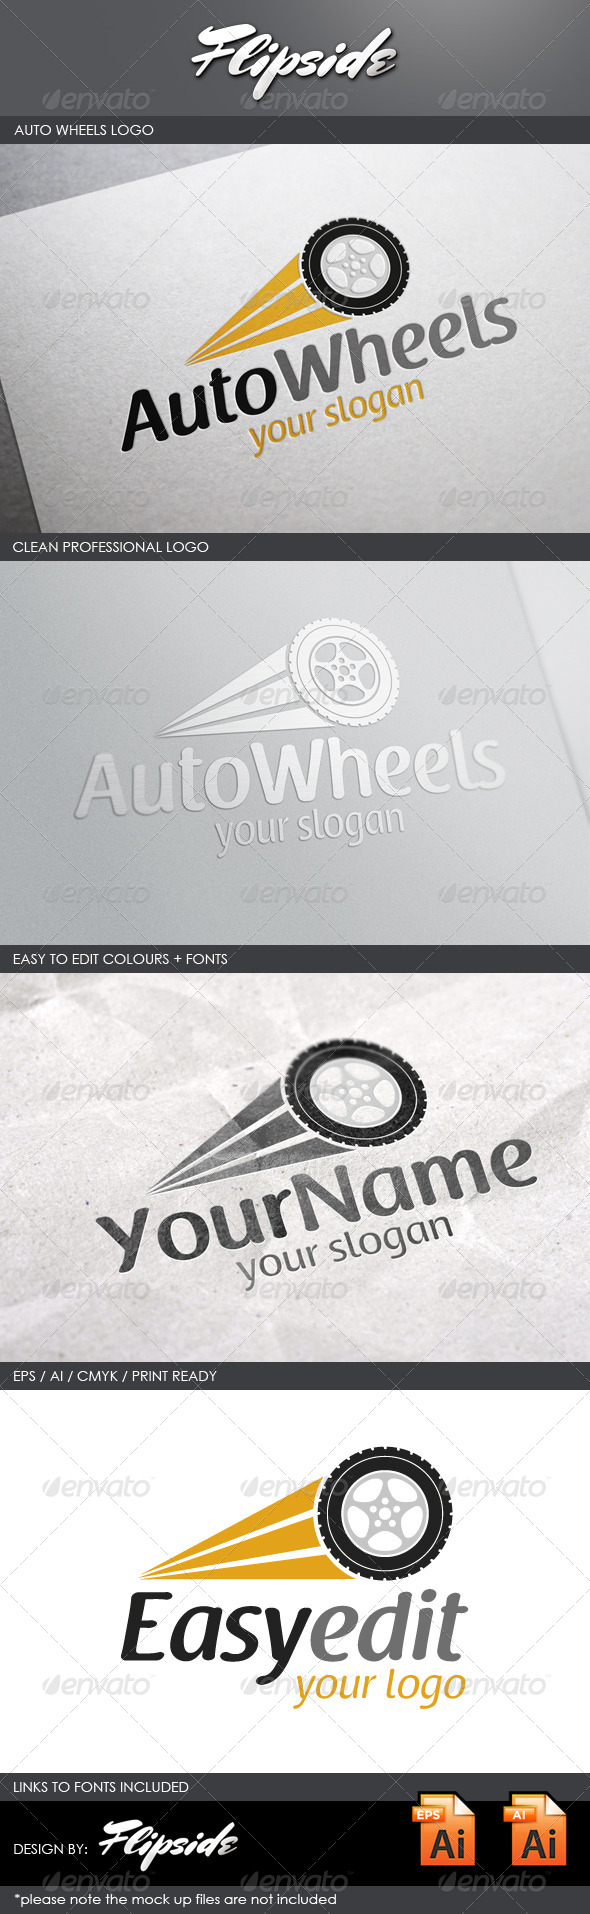 GraphicRiver Auto Wheels Logo 4327644